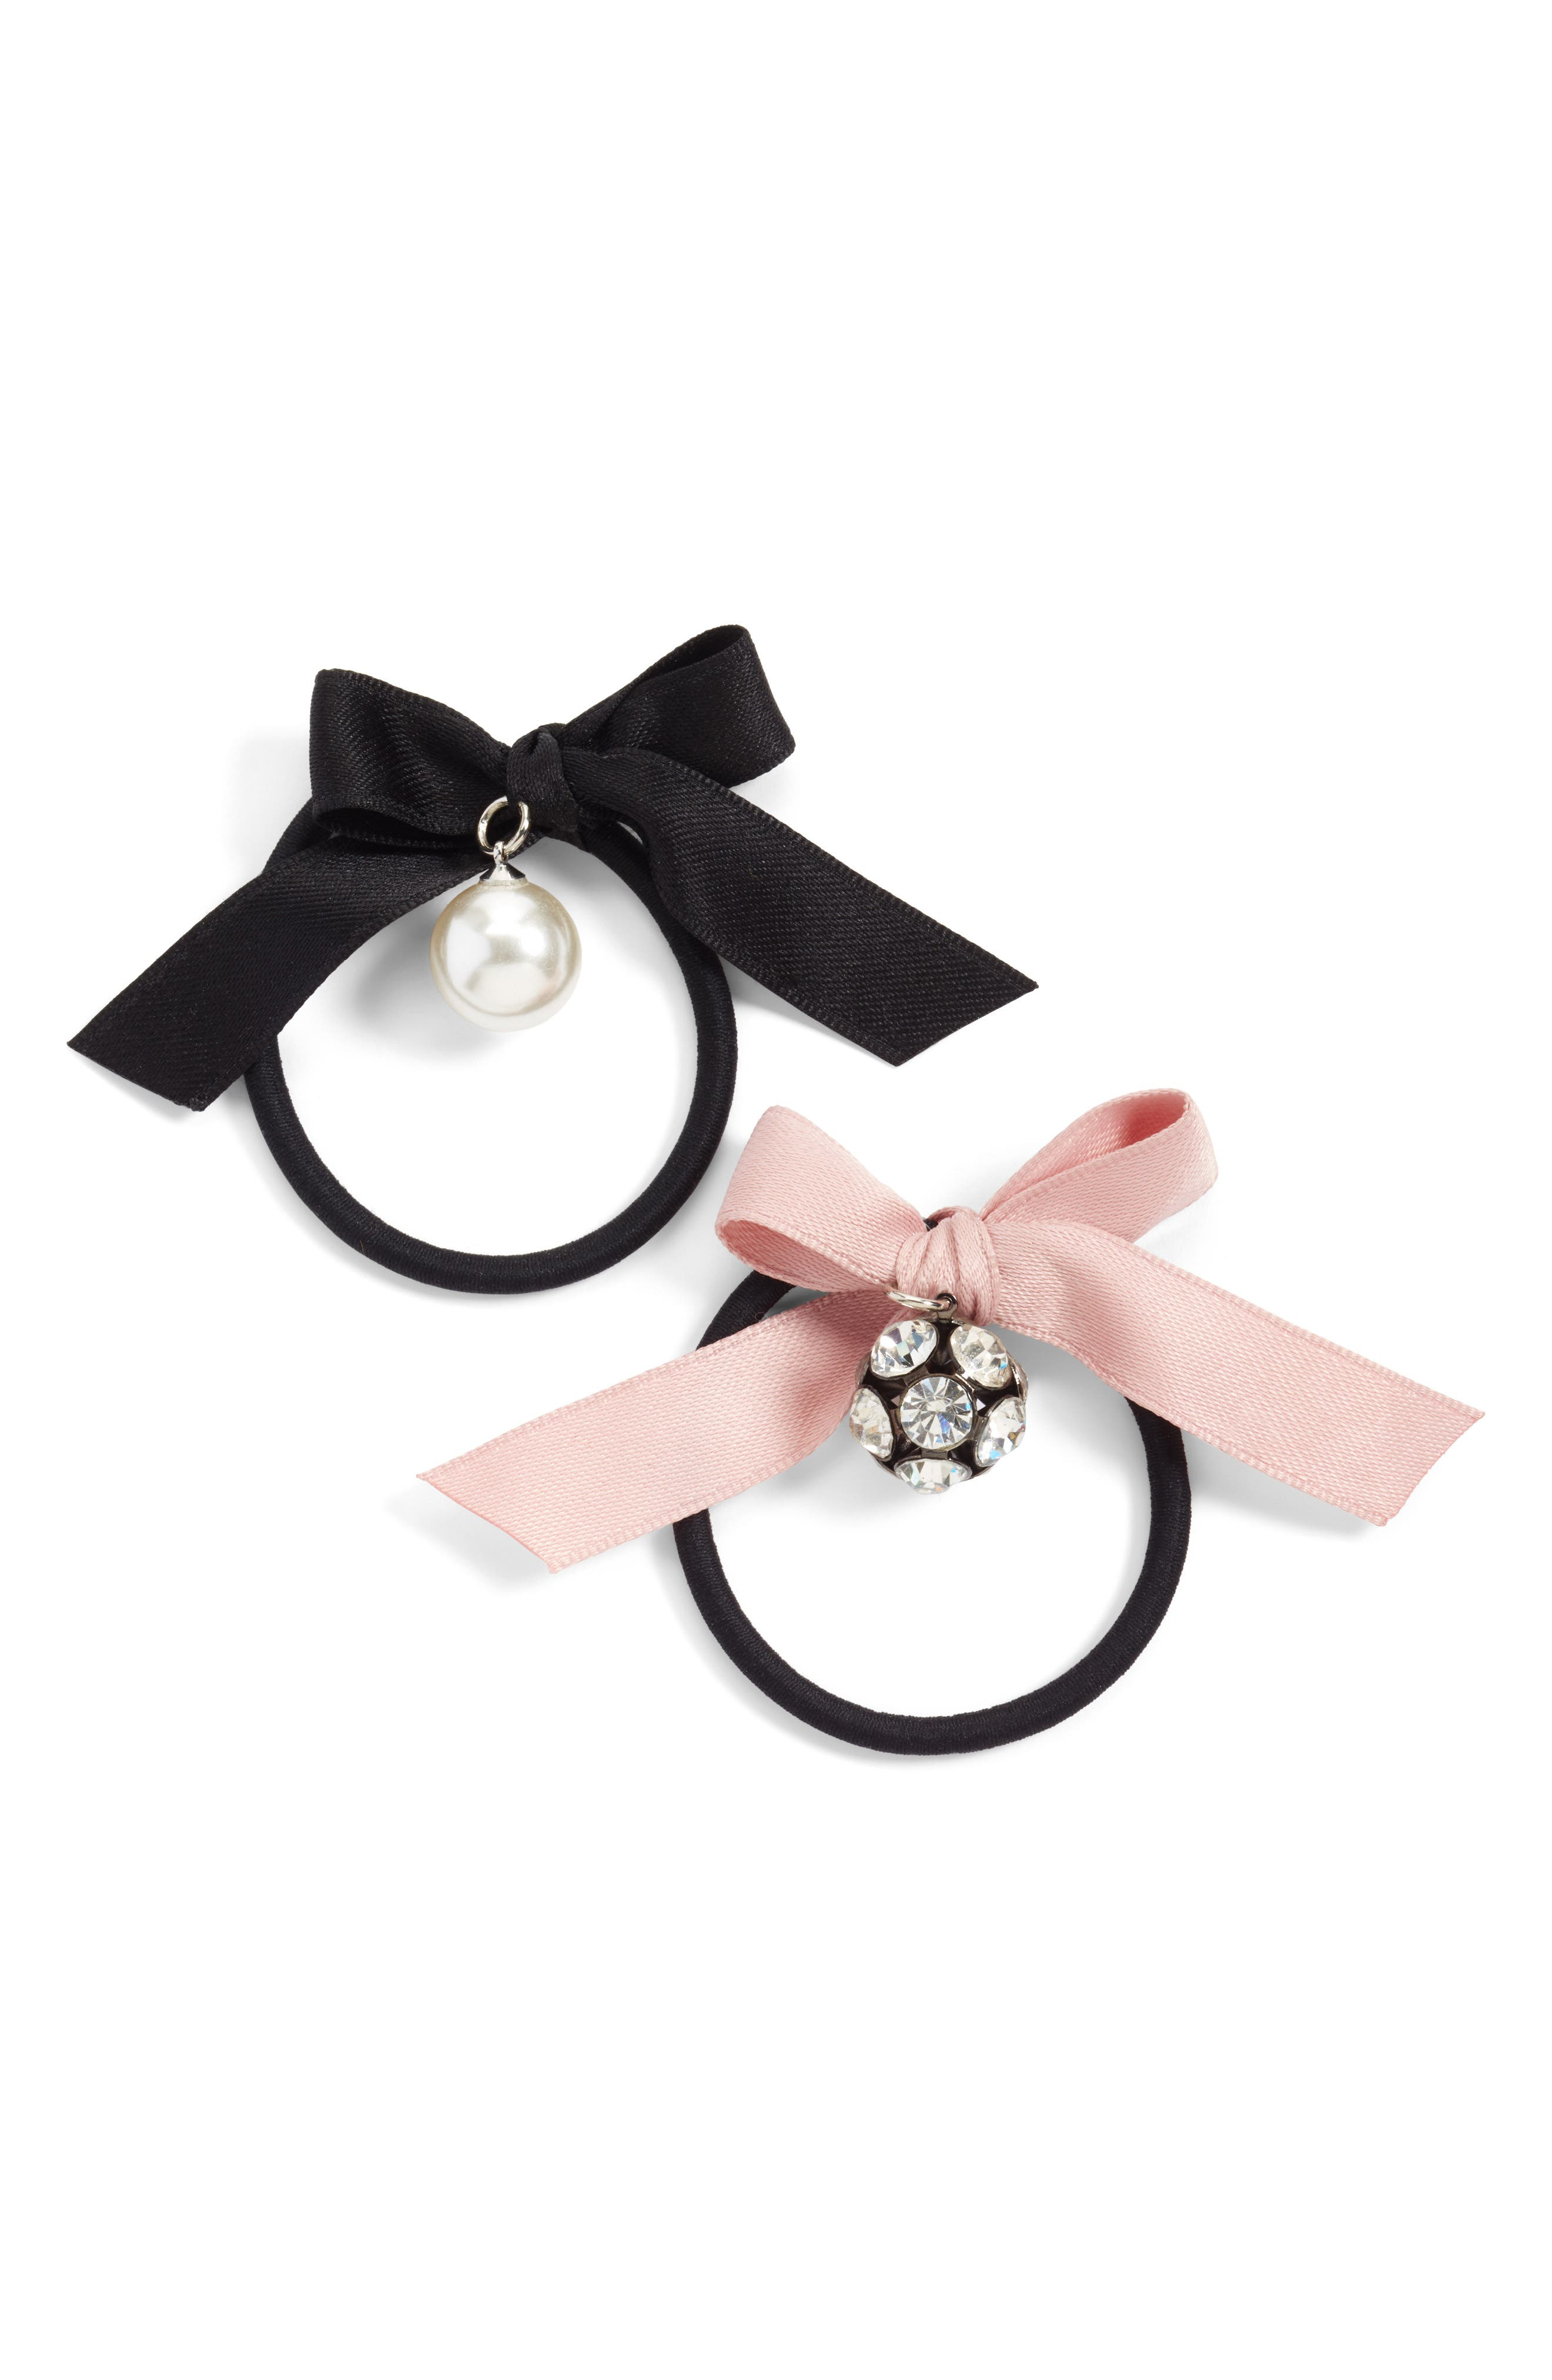 2-Pack Bow with Imitation Pearl & Crystal Charm Ponytail Holders,                         Main,                         color, Black/ Pink